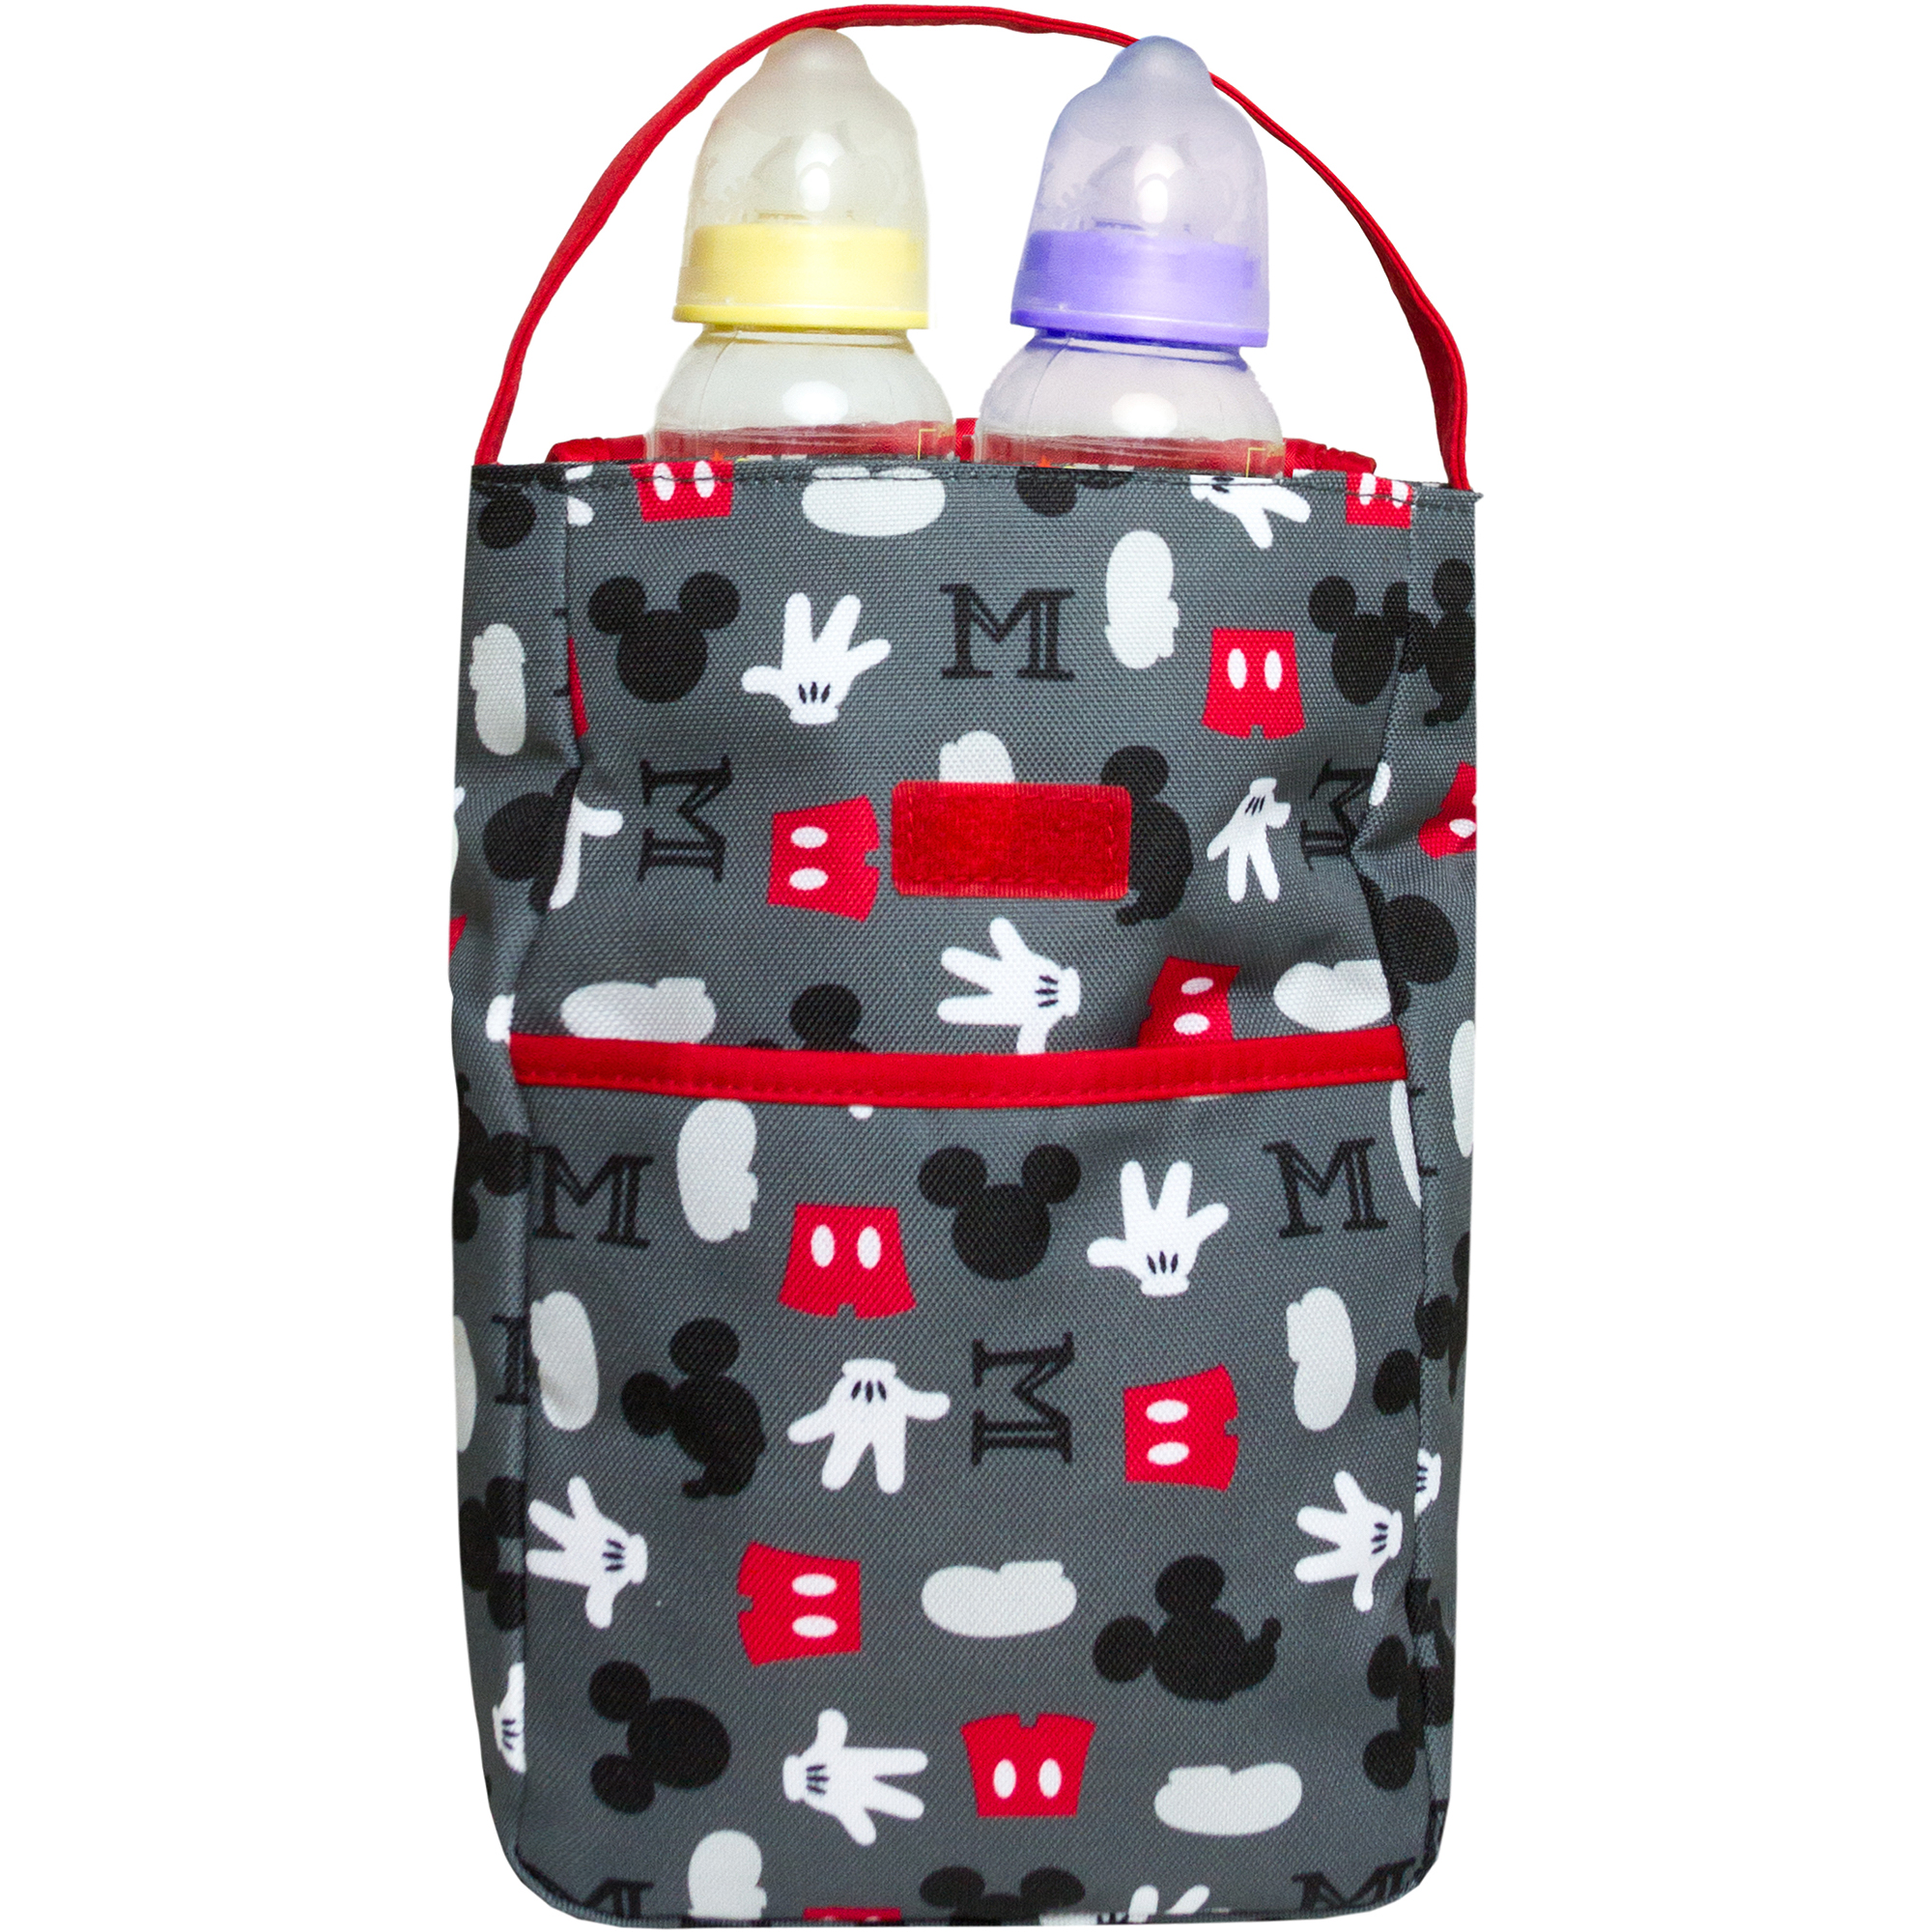 Disney Mickey Mouse 5-in-1 Diaper Tote